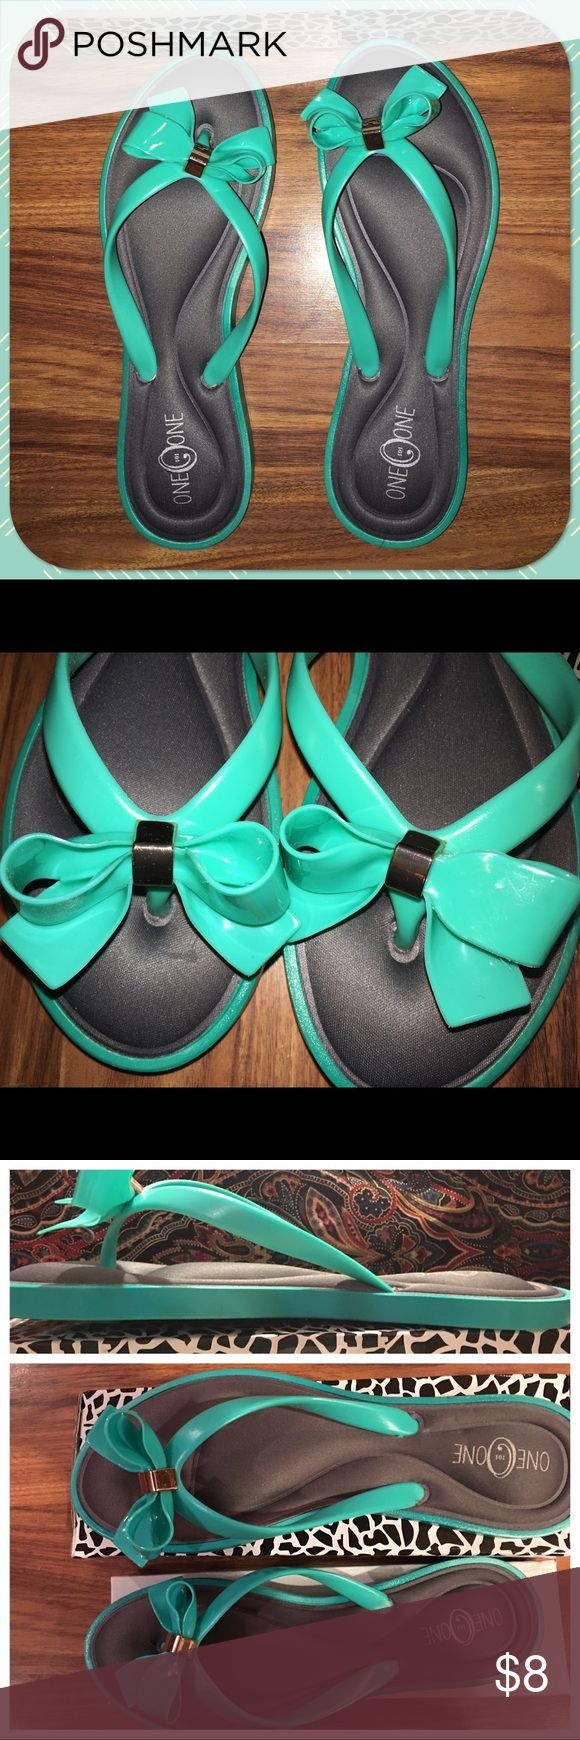 🐠Gel Sole Sandals NIB🐠 Gel sole teal sandals brand new in the box size 10. Hard plastic trim and soft gel inside. Very comfortable with cute bow detail on the top. Fit true to size. They are a true size 10. OneohOne Shoes Sandals